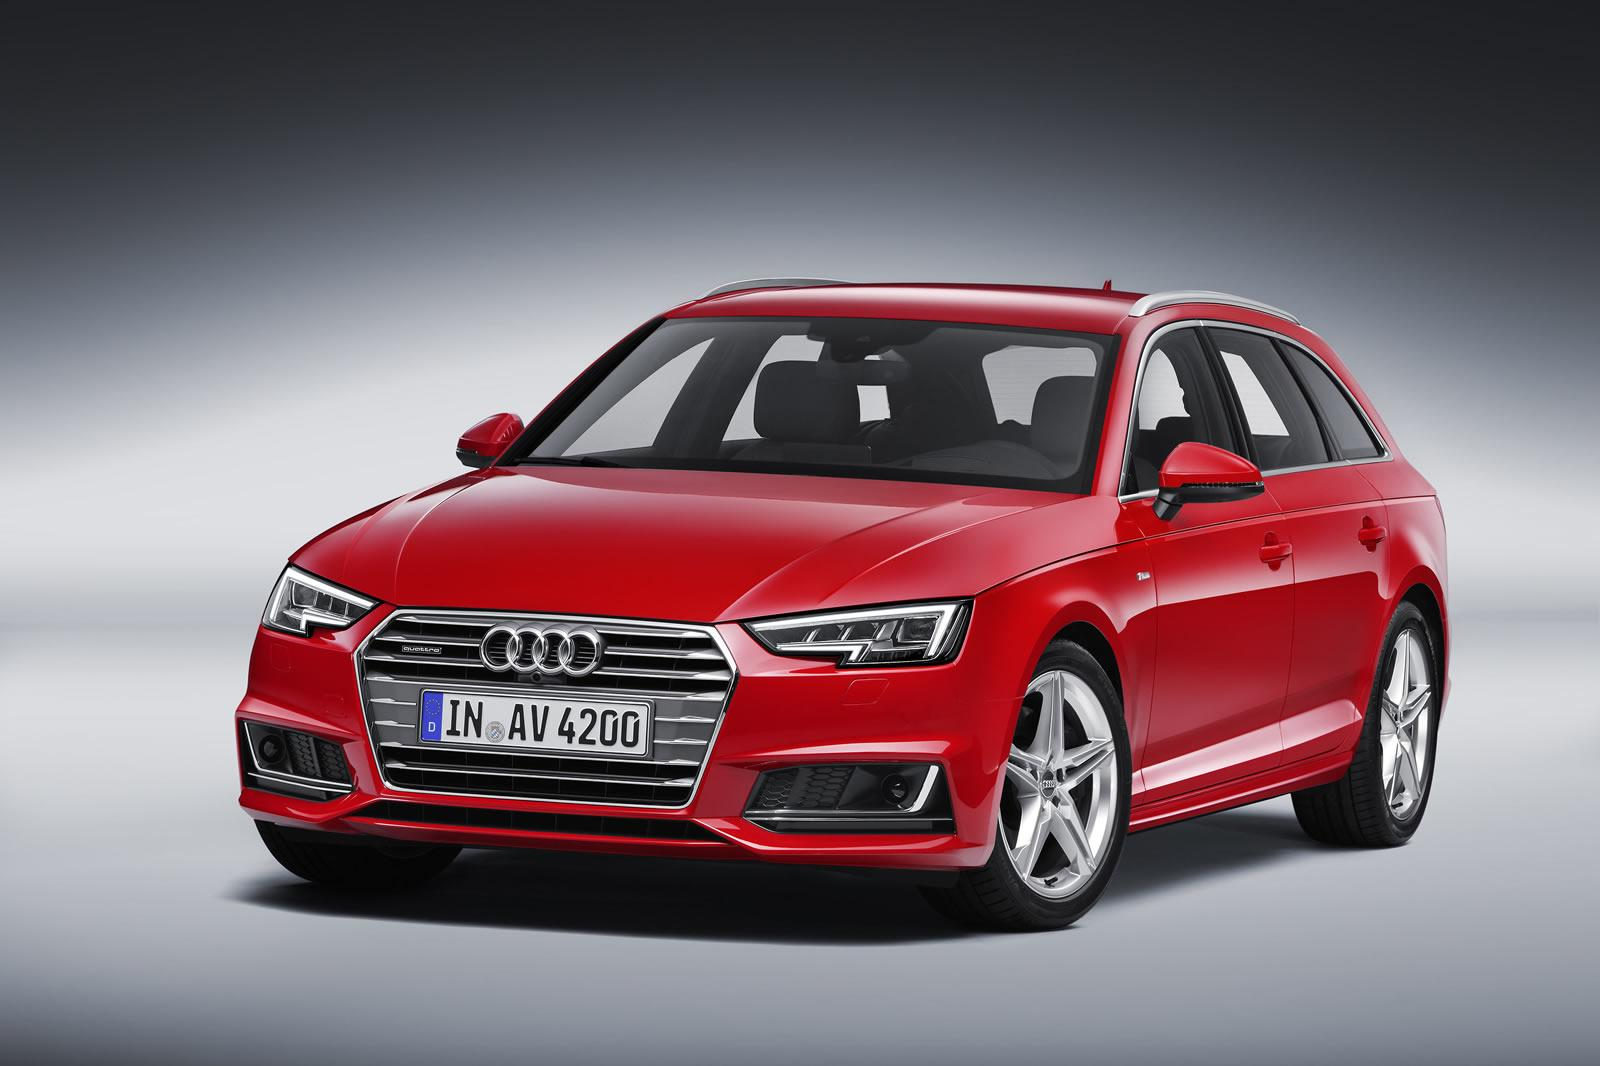 2016 audi a4 avant b9 photos videos and details revealed autoevolution. Black Bedroom Furniture Sets. Home Design Ideas